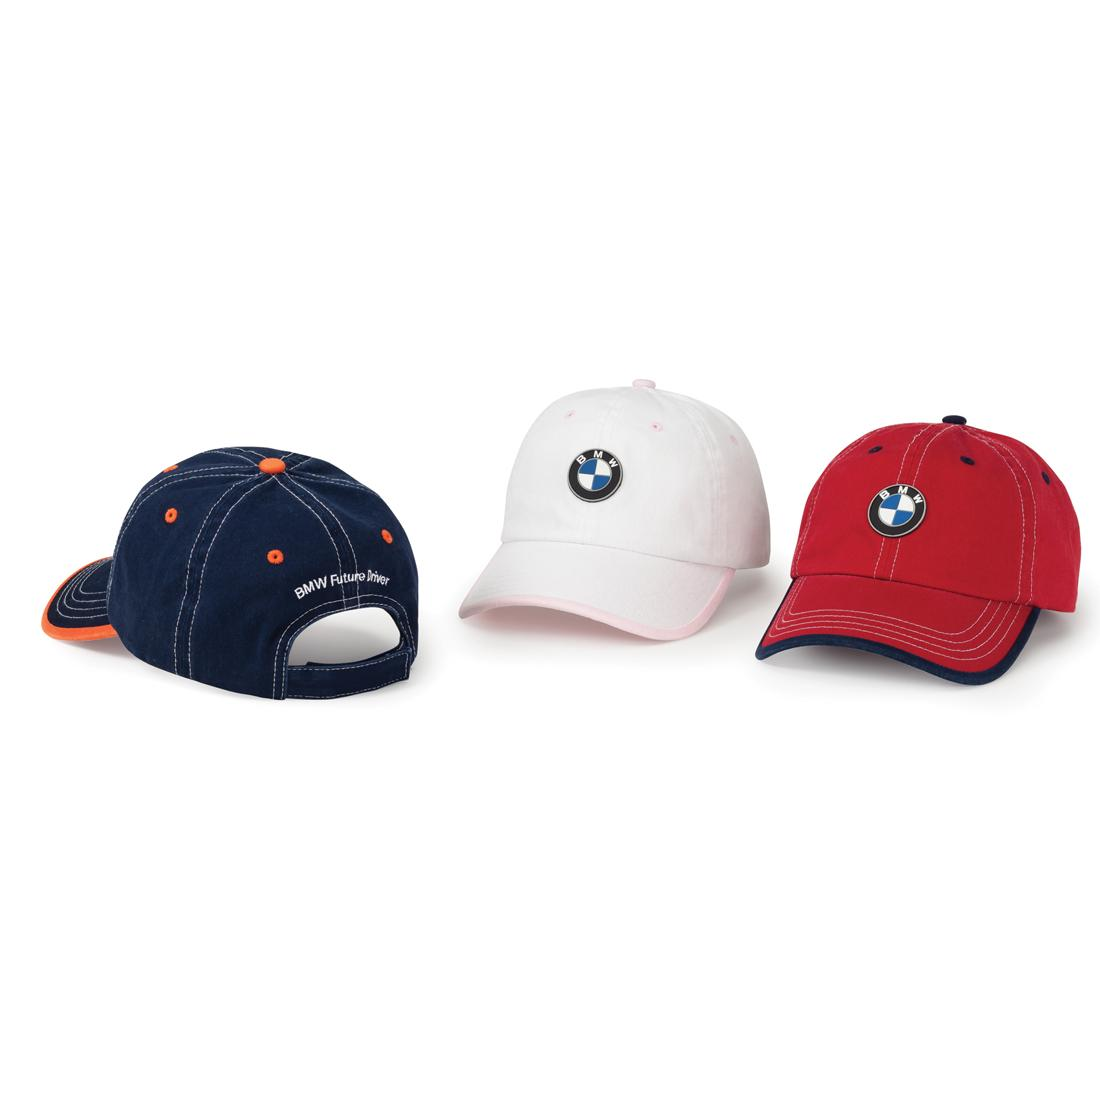 Taylor Made 2011 Season Opener Tmx Staff Bag P23019 furthermore Apple Watch Nike besides BMW KIDS CHINO CAP in addition Fadeaway Elite Shooting Sleeve additionally Neo Boutique. on golf accessory